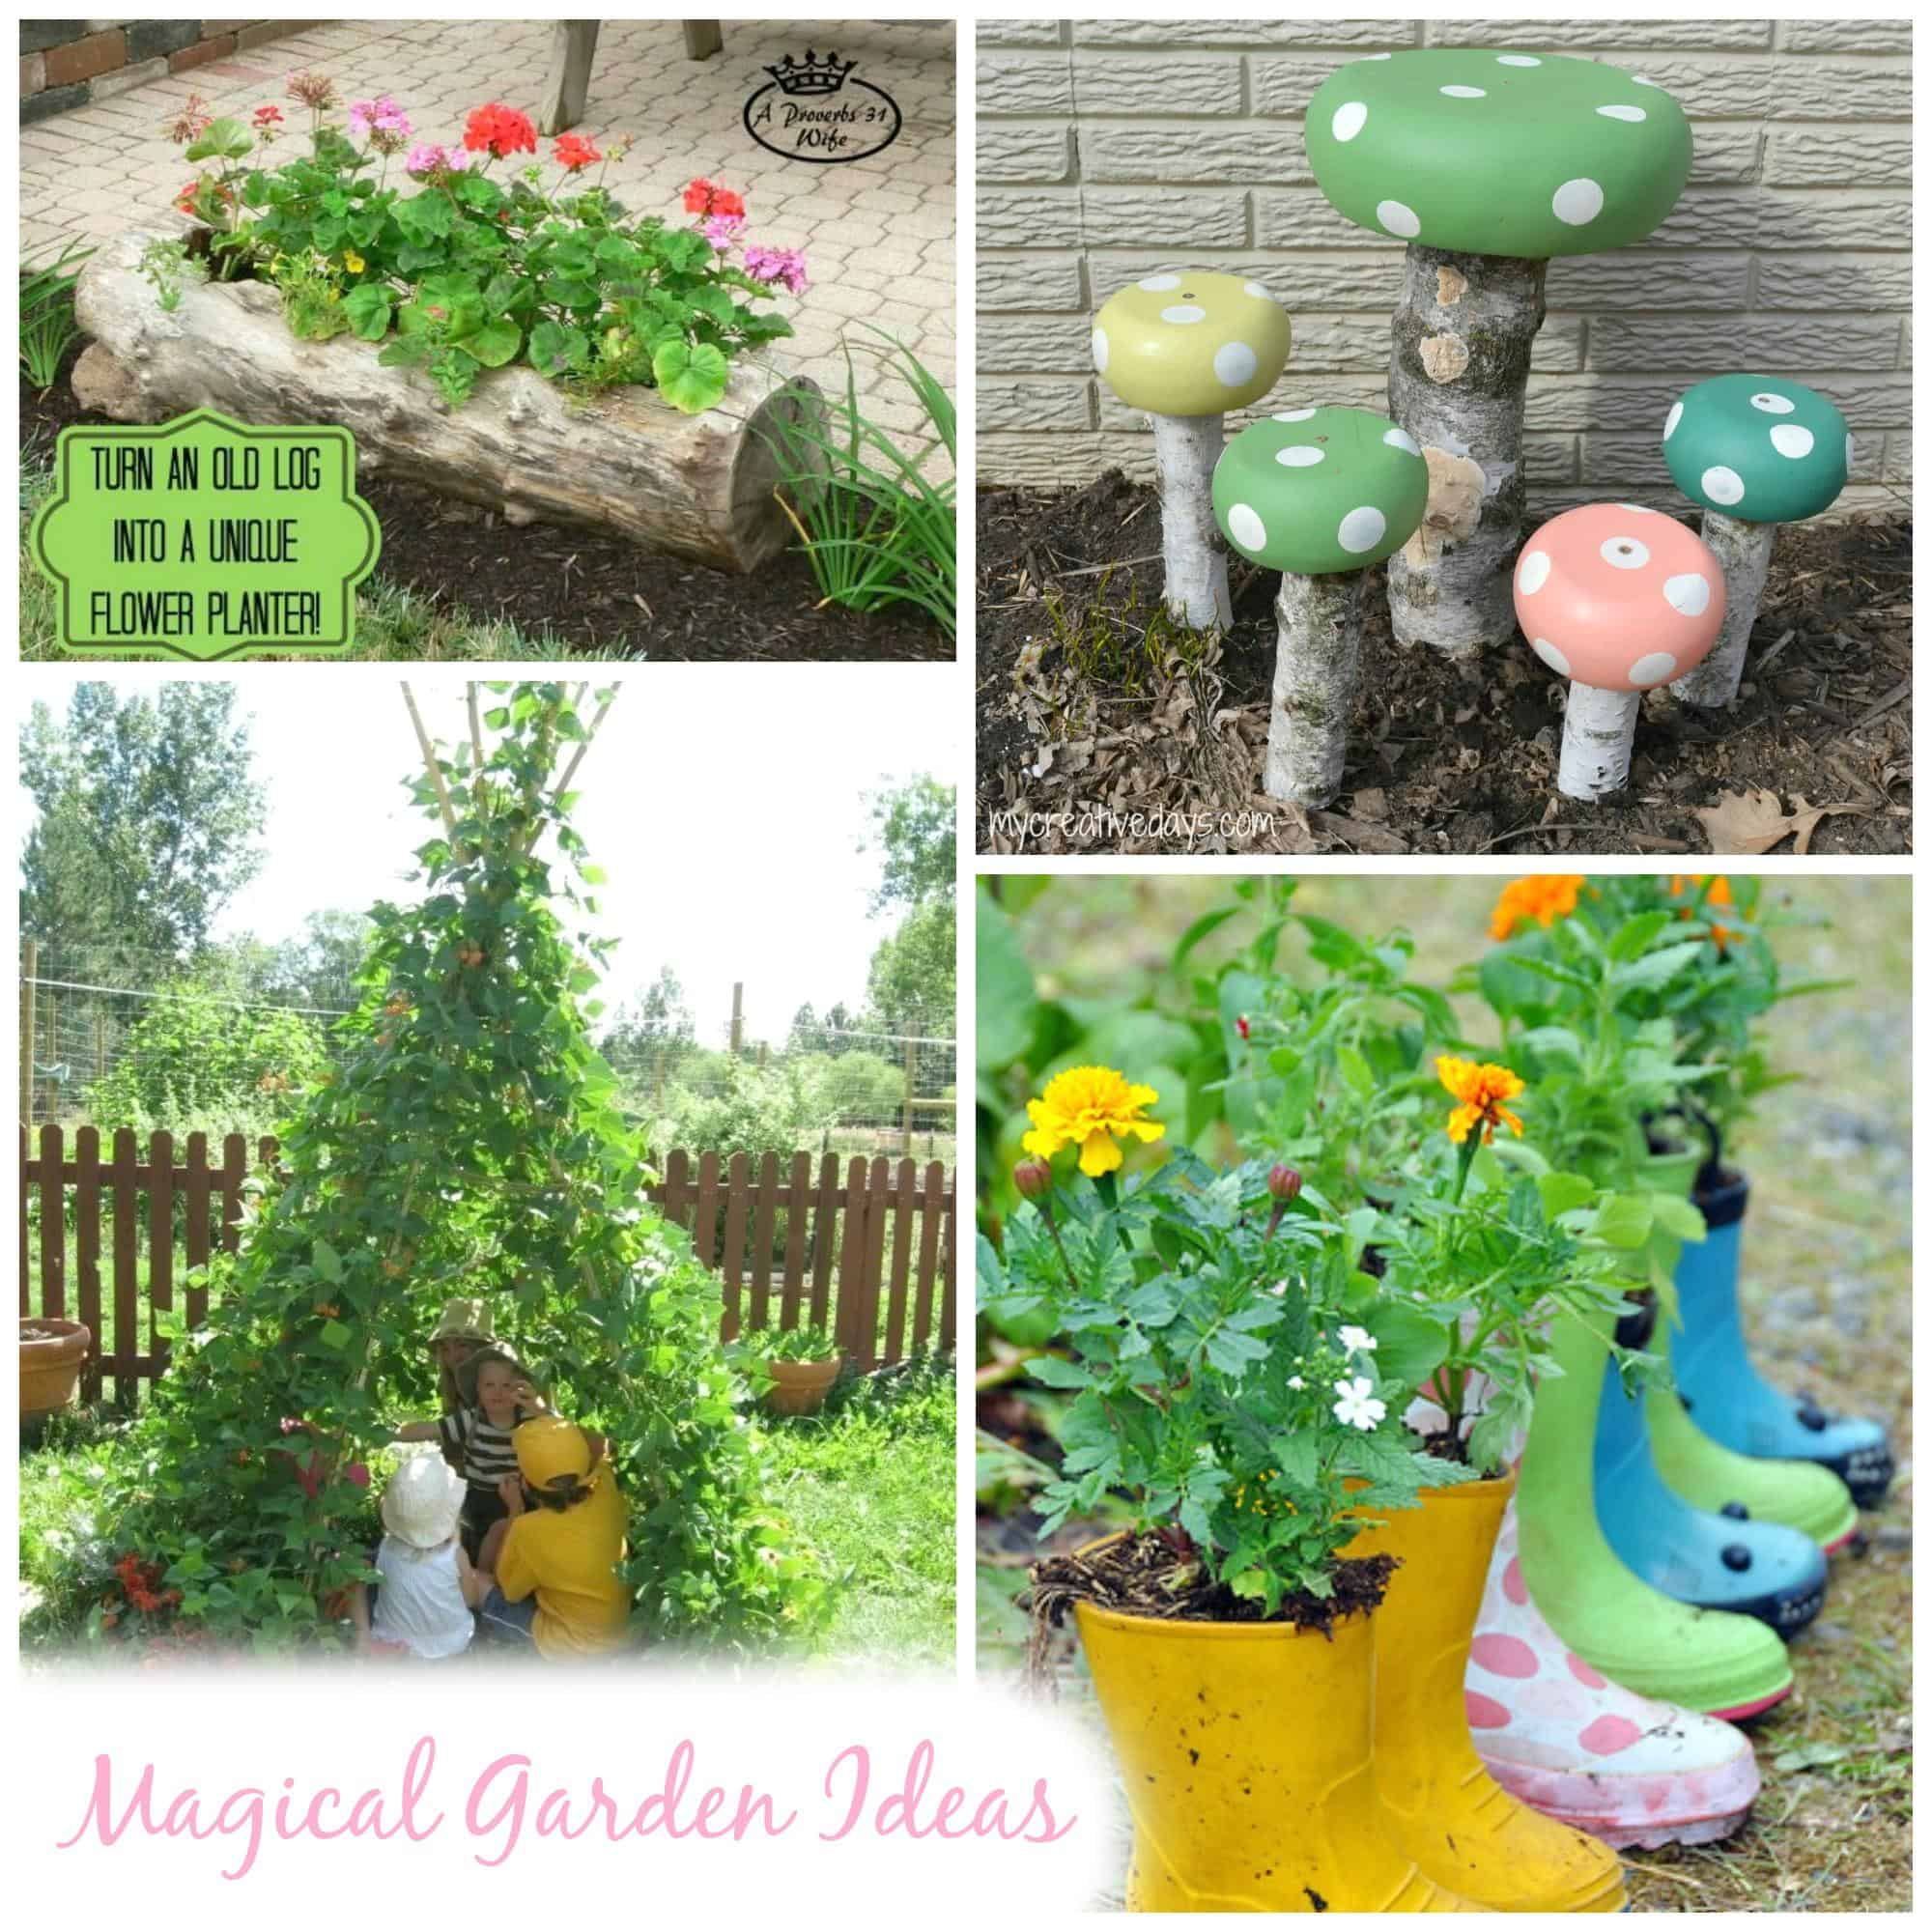 Magical garden inspiration great diy garden ideas emma owl for Great garden ideas